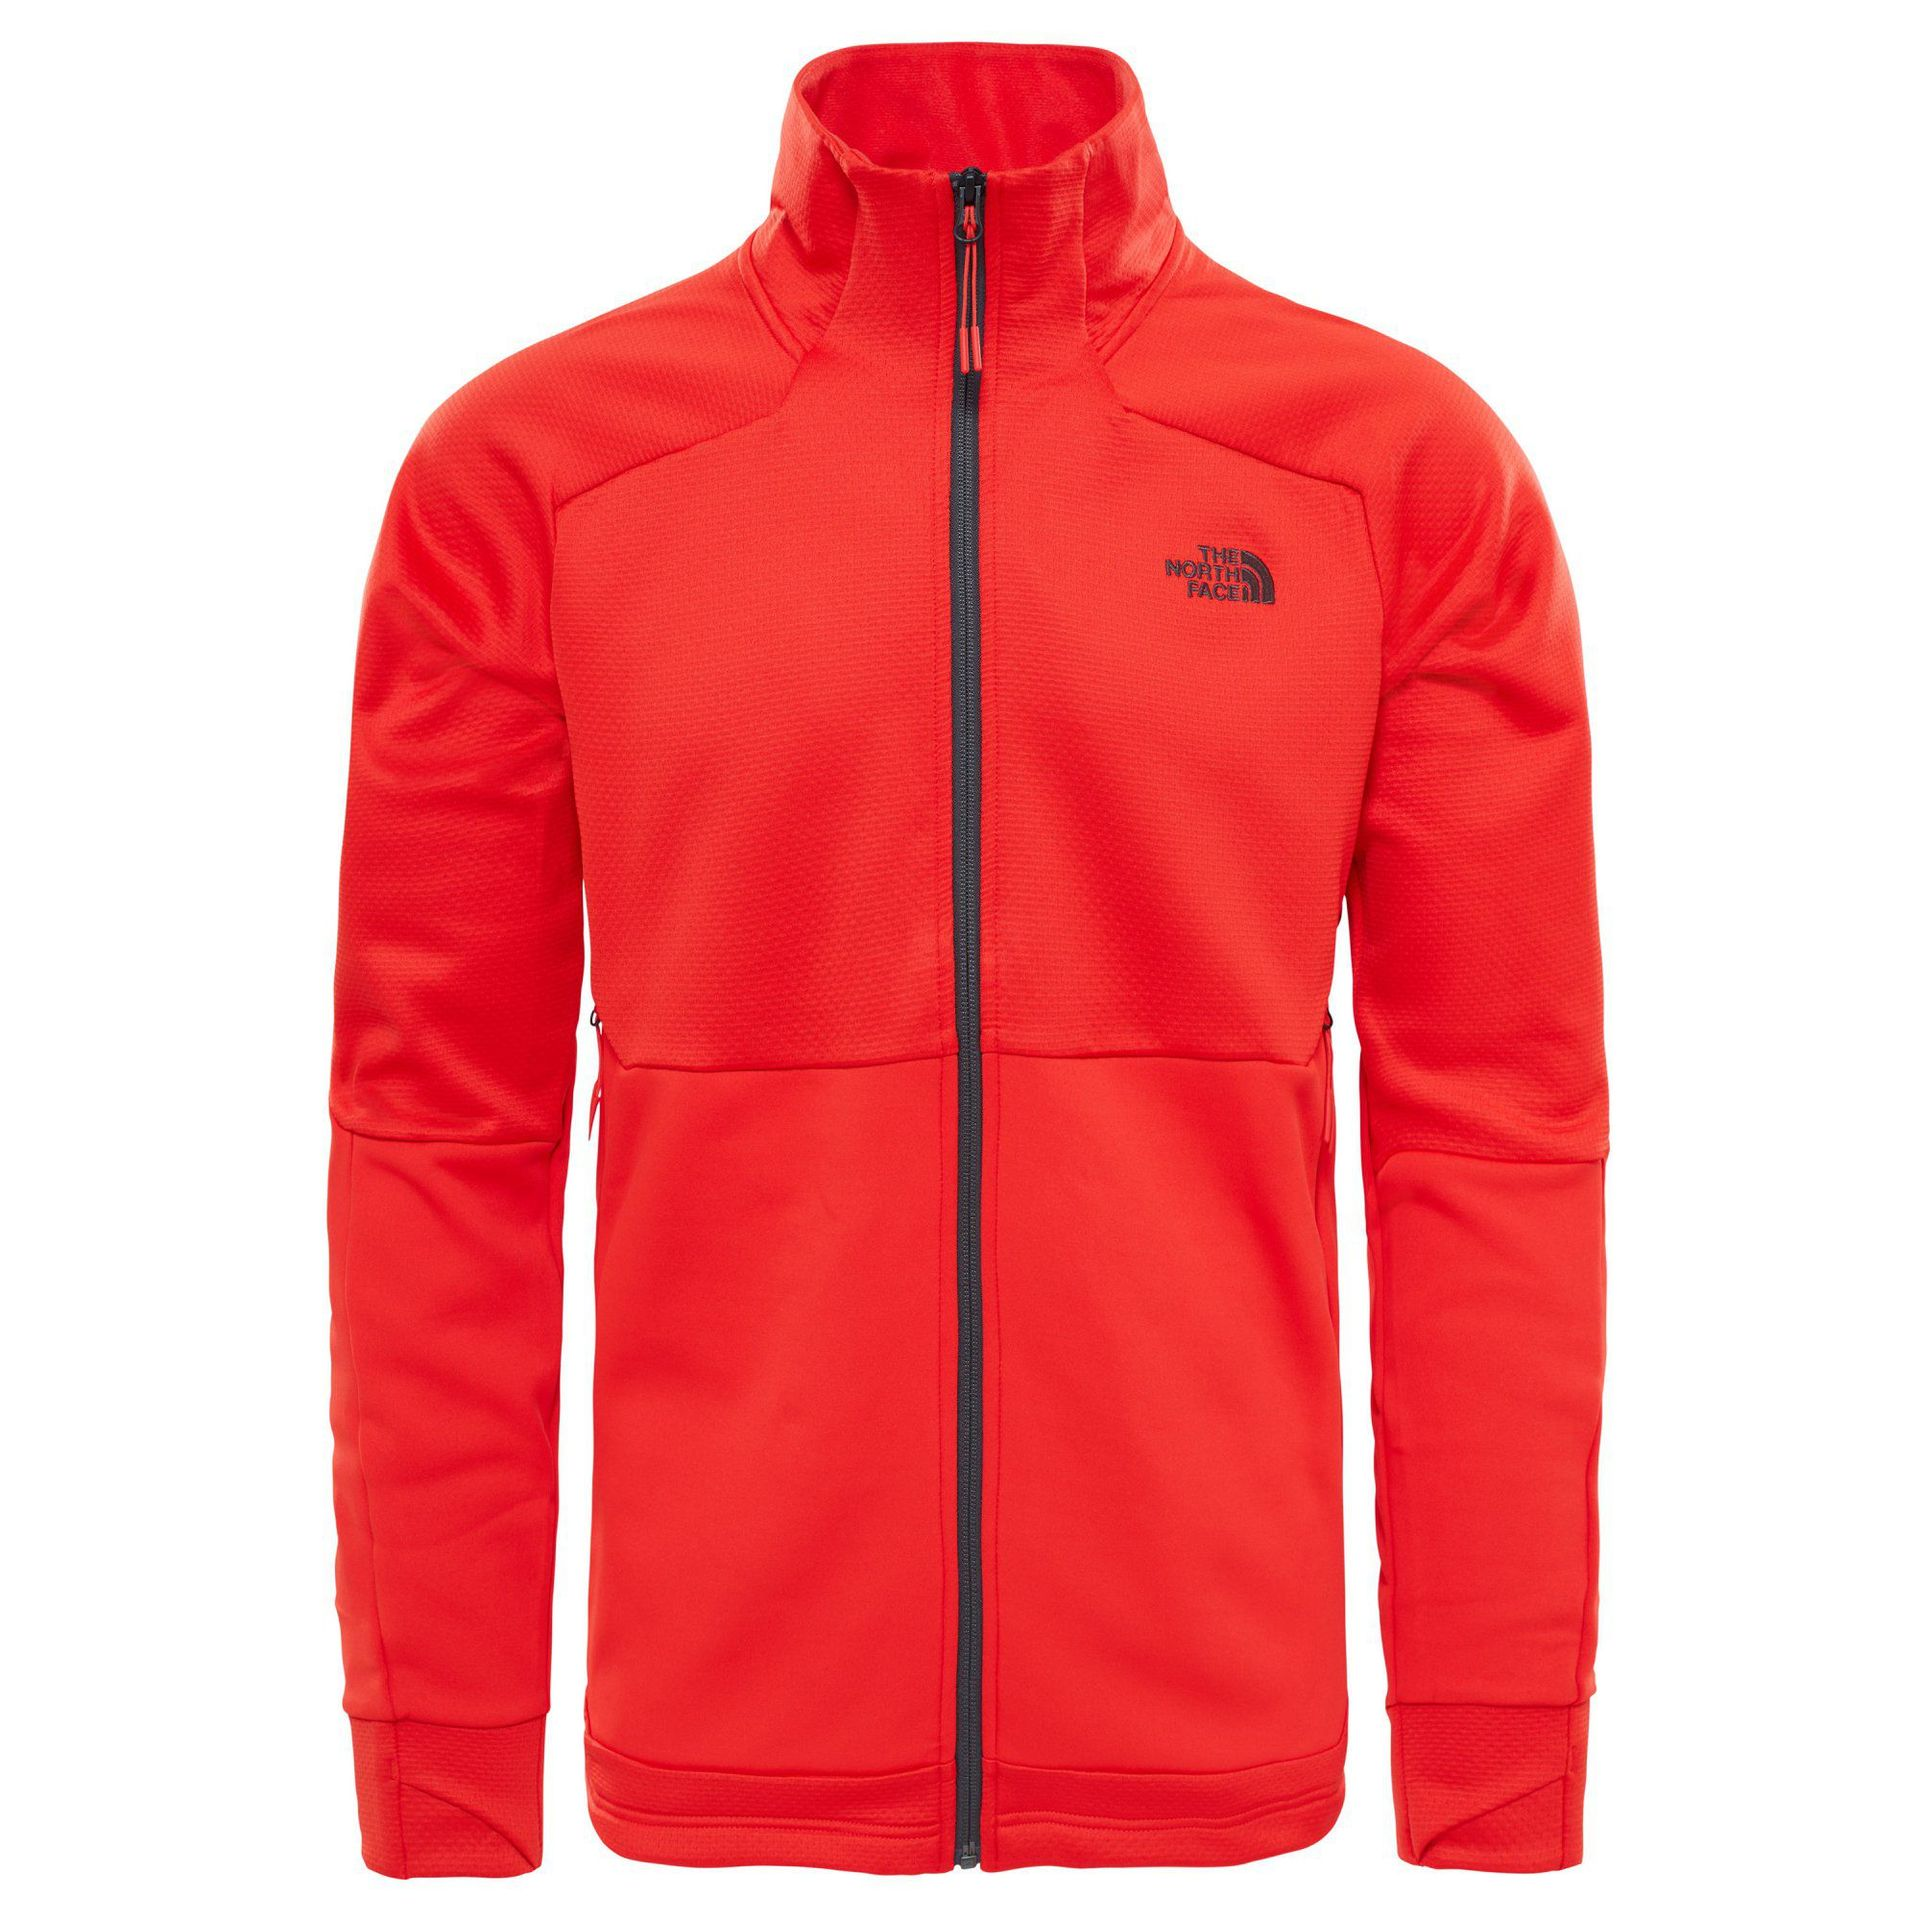 POLAR THE NORTH FACE CRODA ROSSA CENTENNIAL RED 1